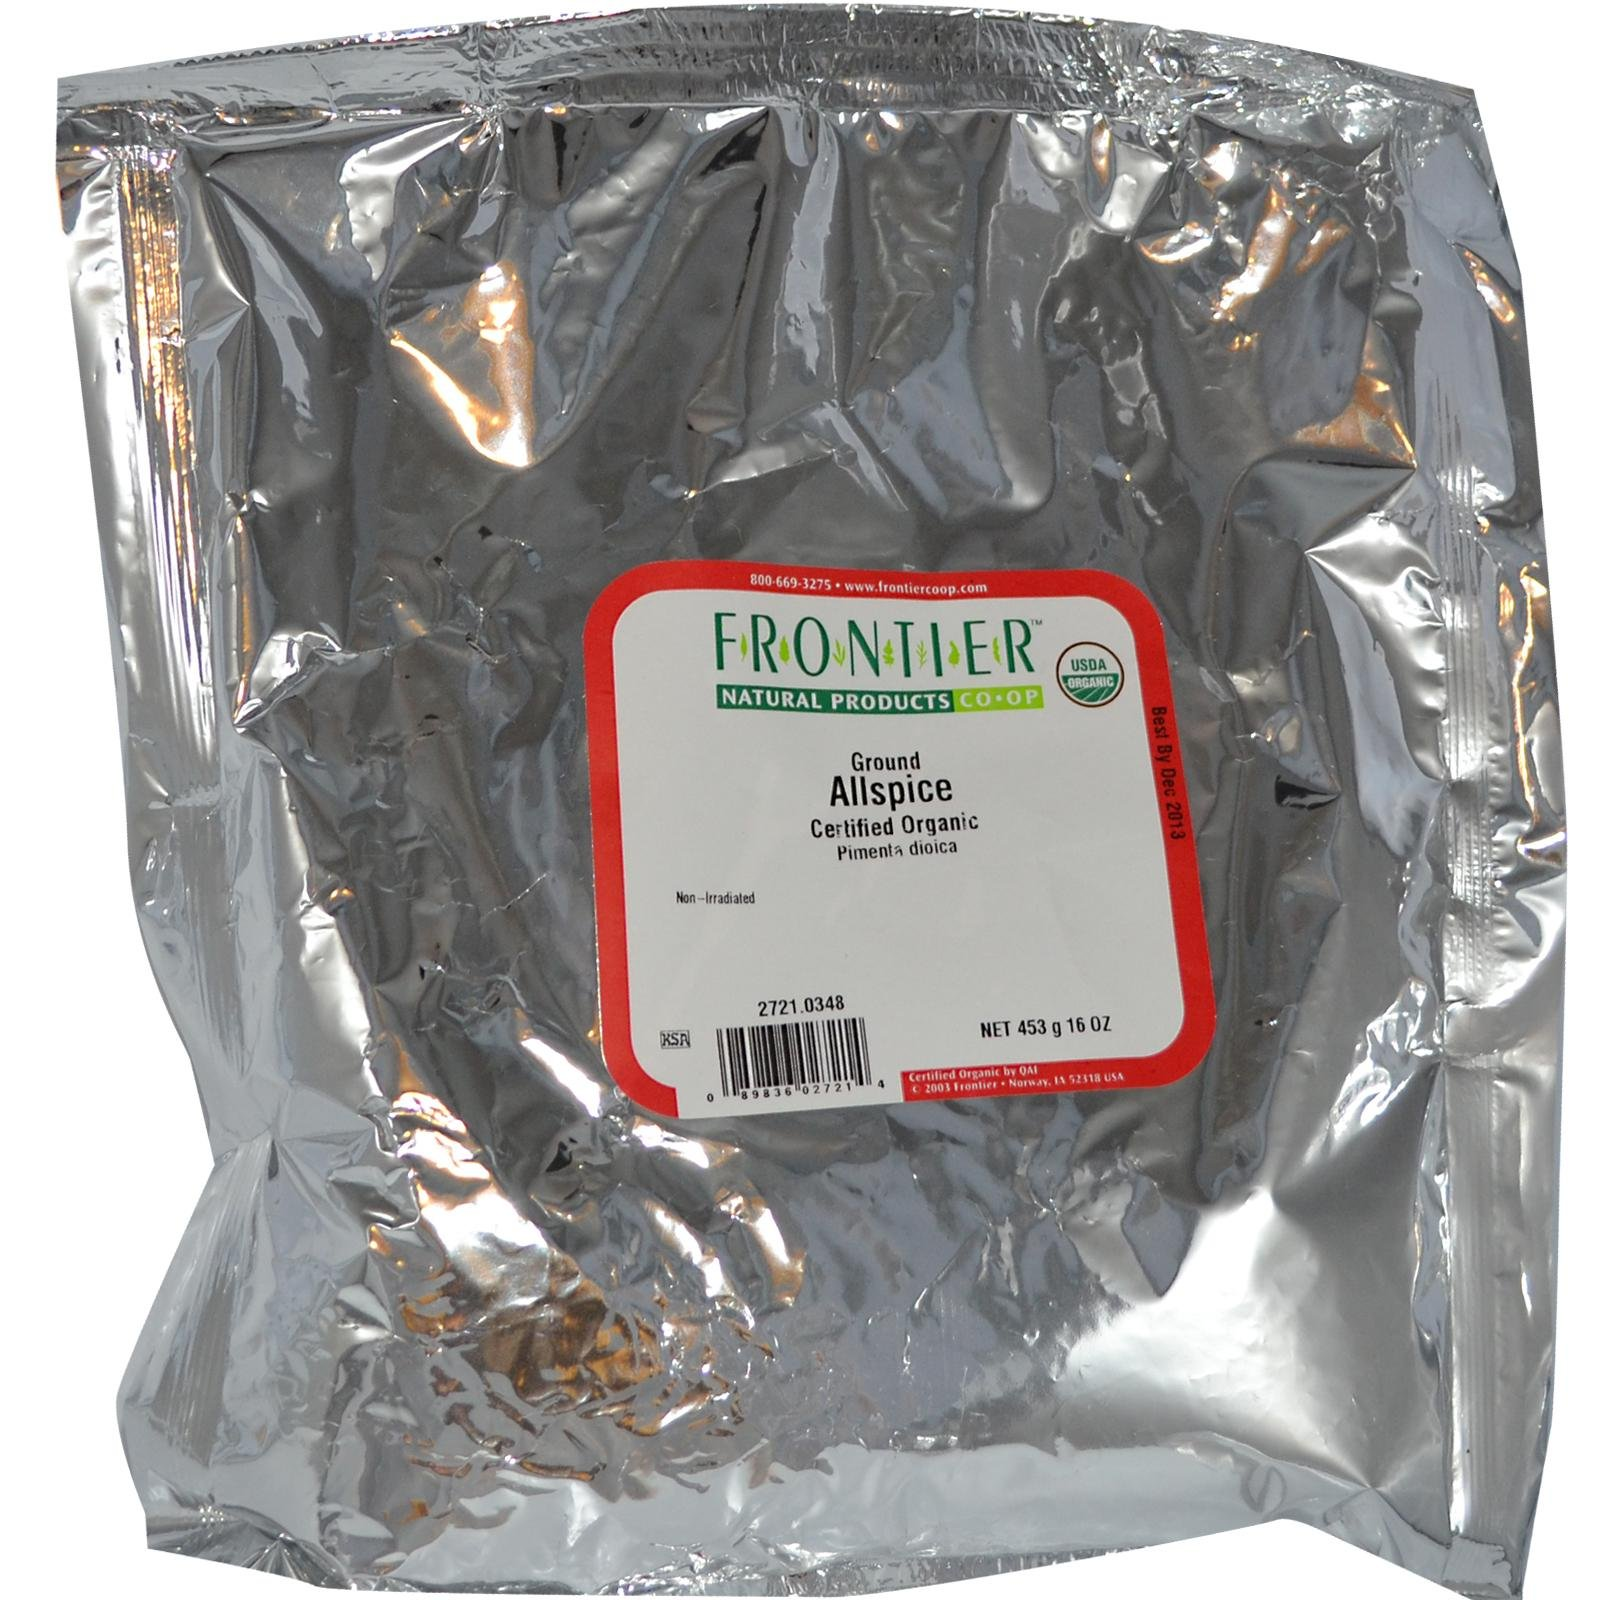 Frontier Herb Organic Allspice Powder, 1 Pound - 1 each.